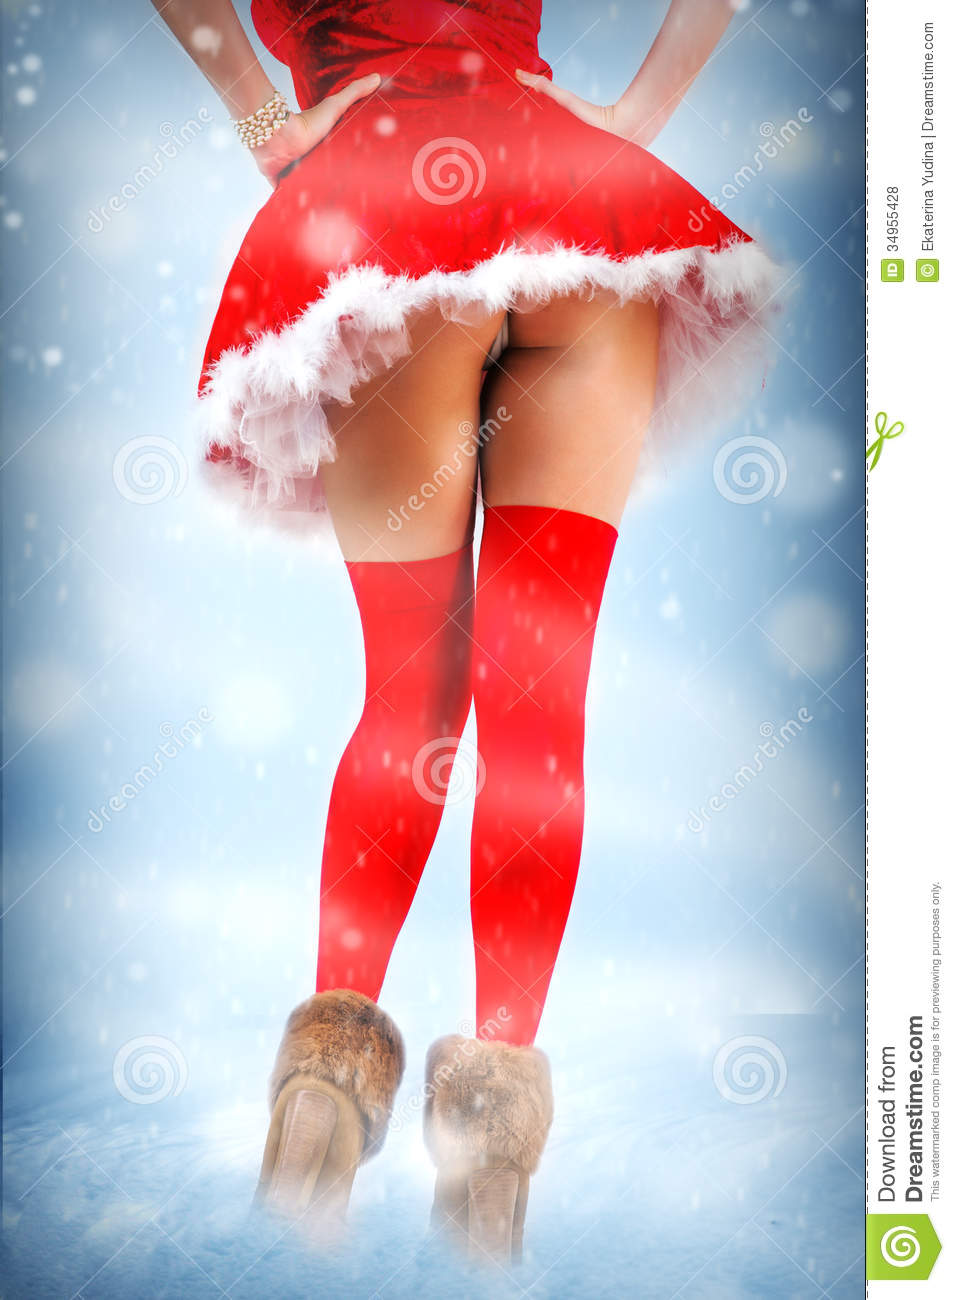 Modern Girl Wallpaper Free Download Christmas Card Legs In Stockings Stock Photo Image Of